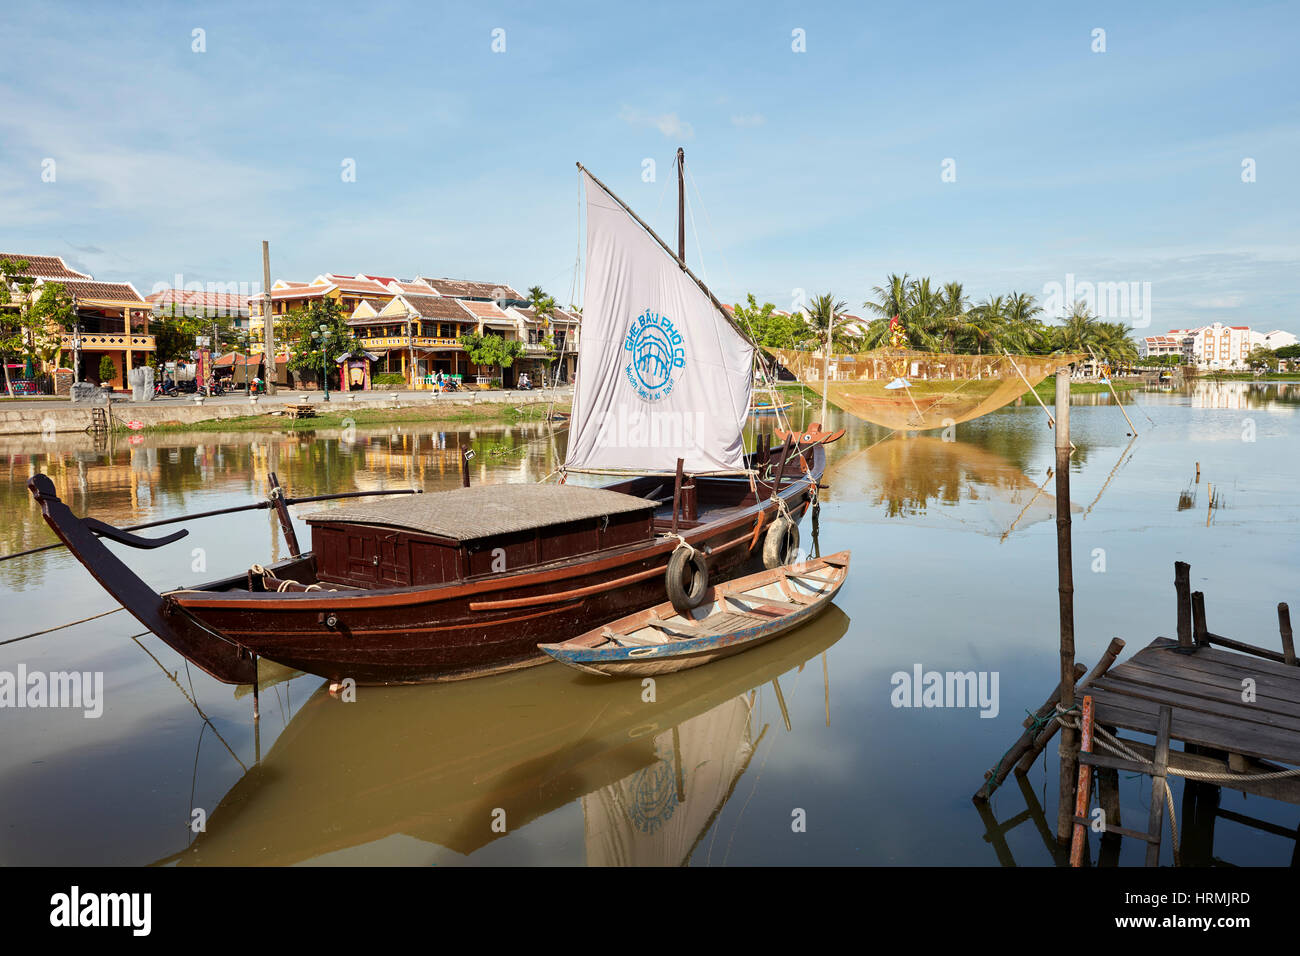 Traditional sail boat on the Thu Bon River. Hoi An, Quang Nam Province, Vietnam. Stock Photo